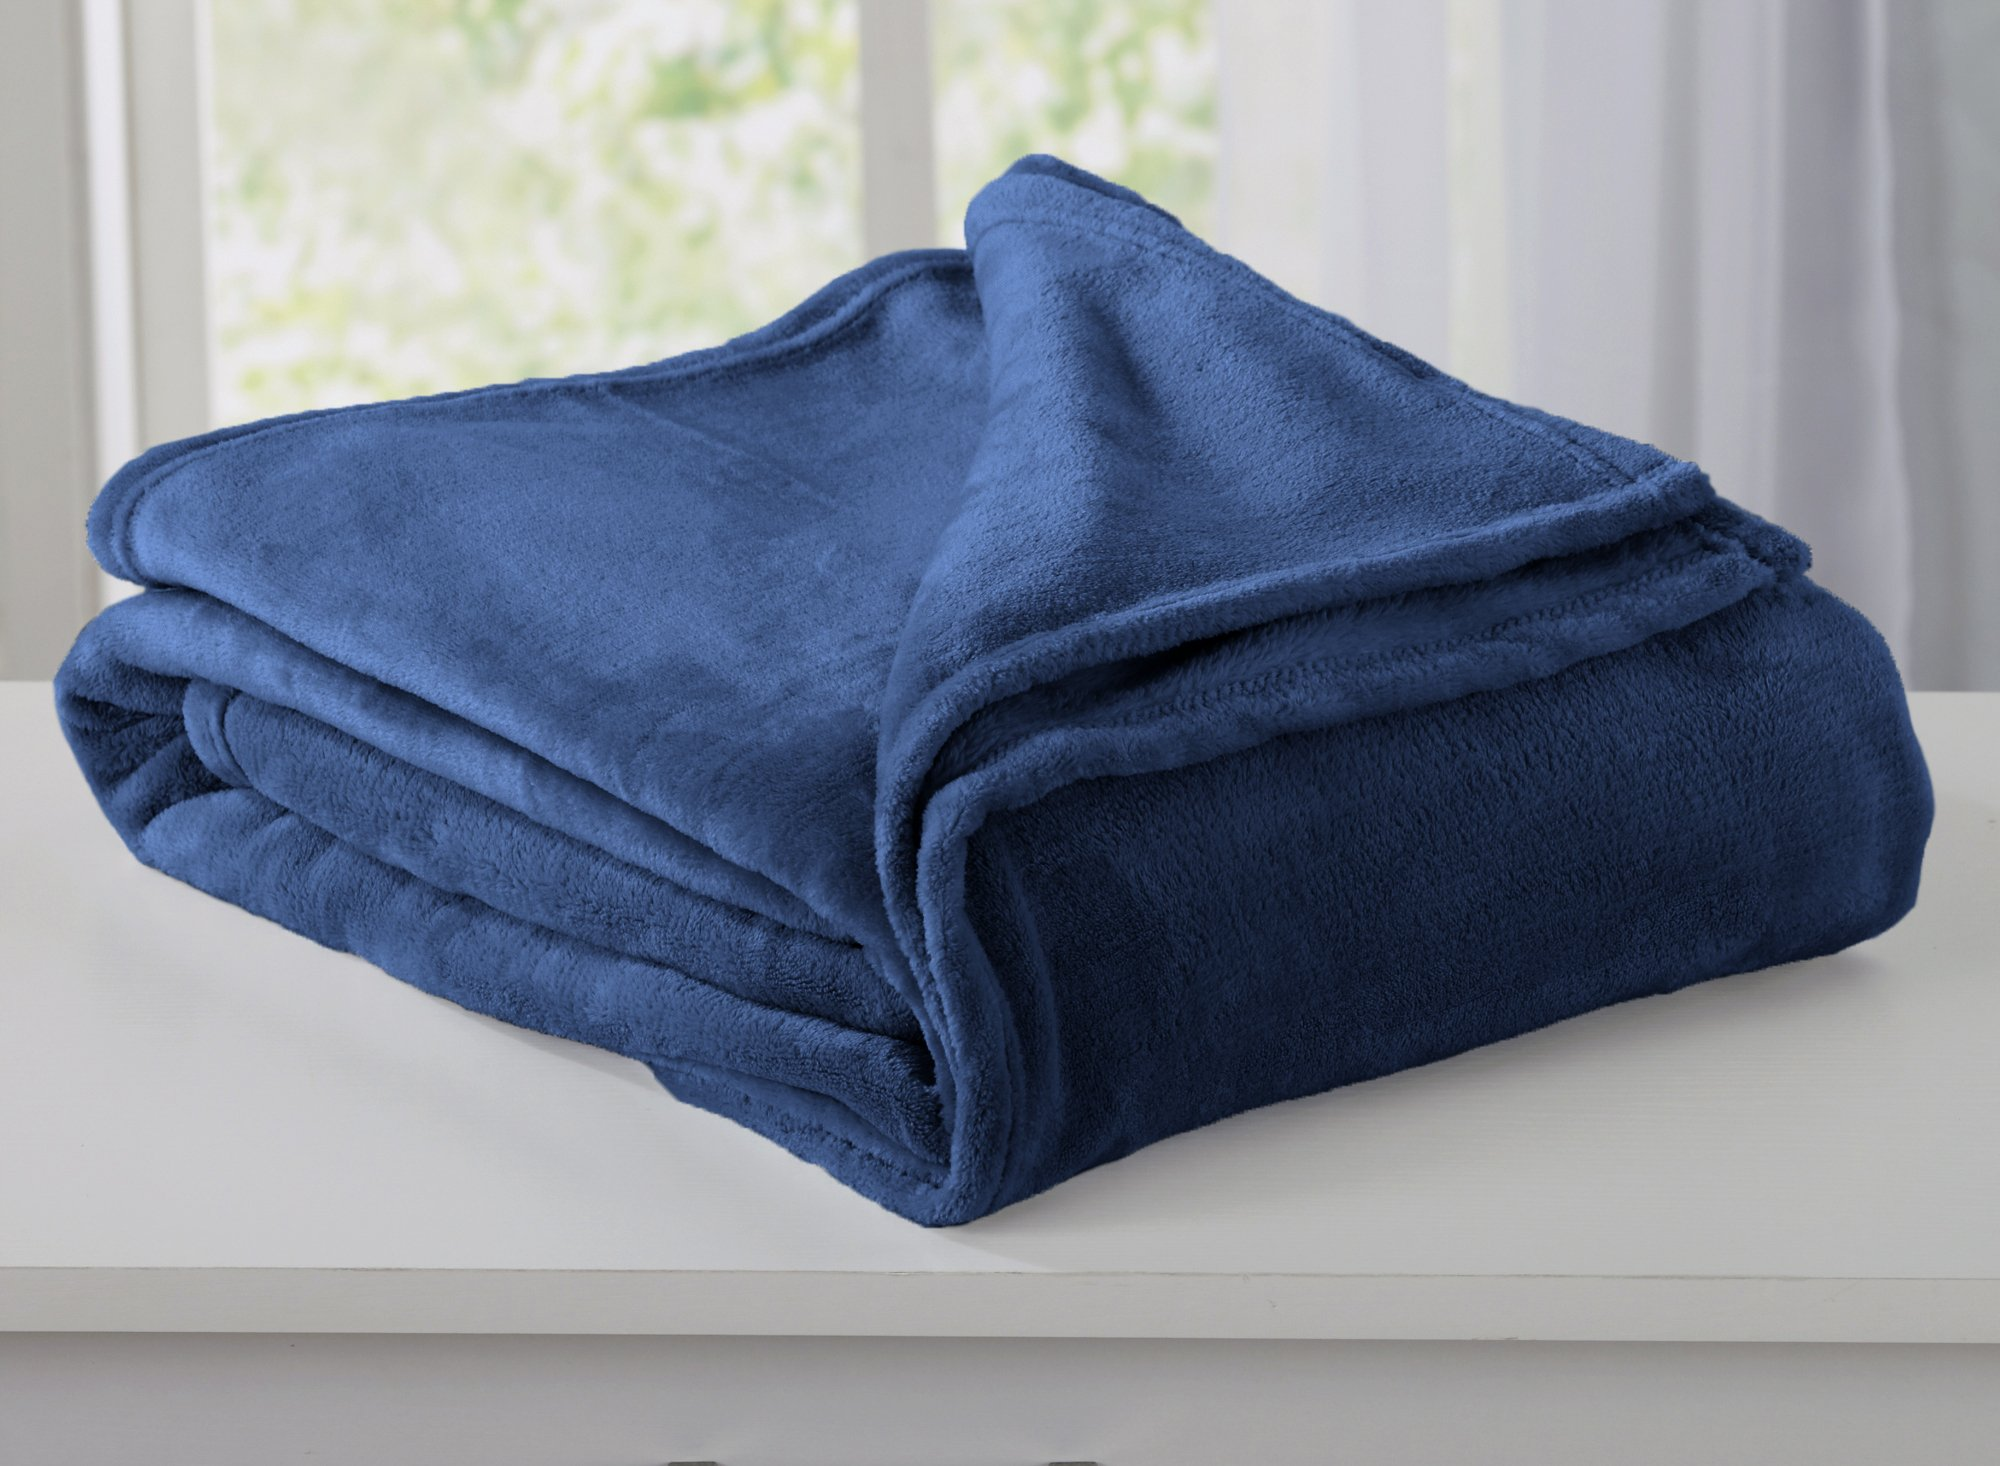 Home Fashion Designs Marlo Collection Ultra Velvet Plush All-Season Super Soft Luxury Bed Blanket. Lightweight and Warm for Ultimate Comfort. By Brand. (King, Navy)